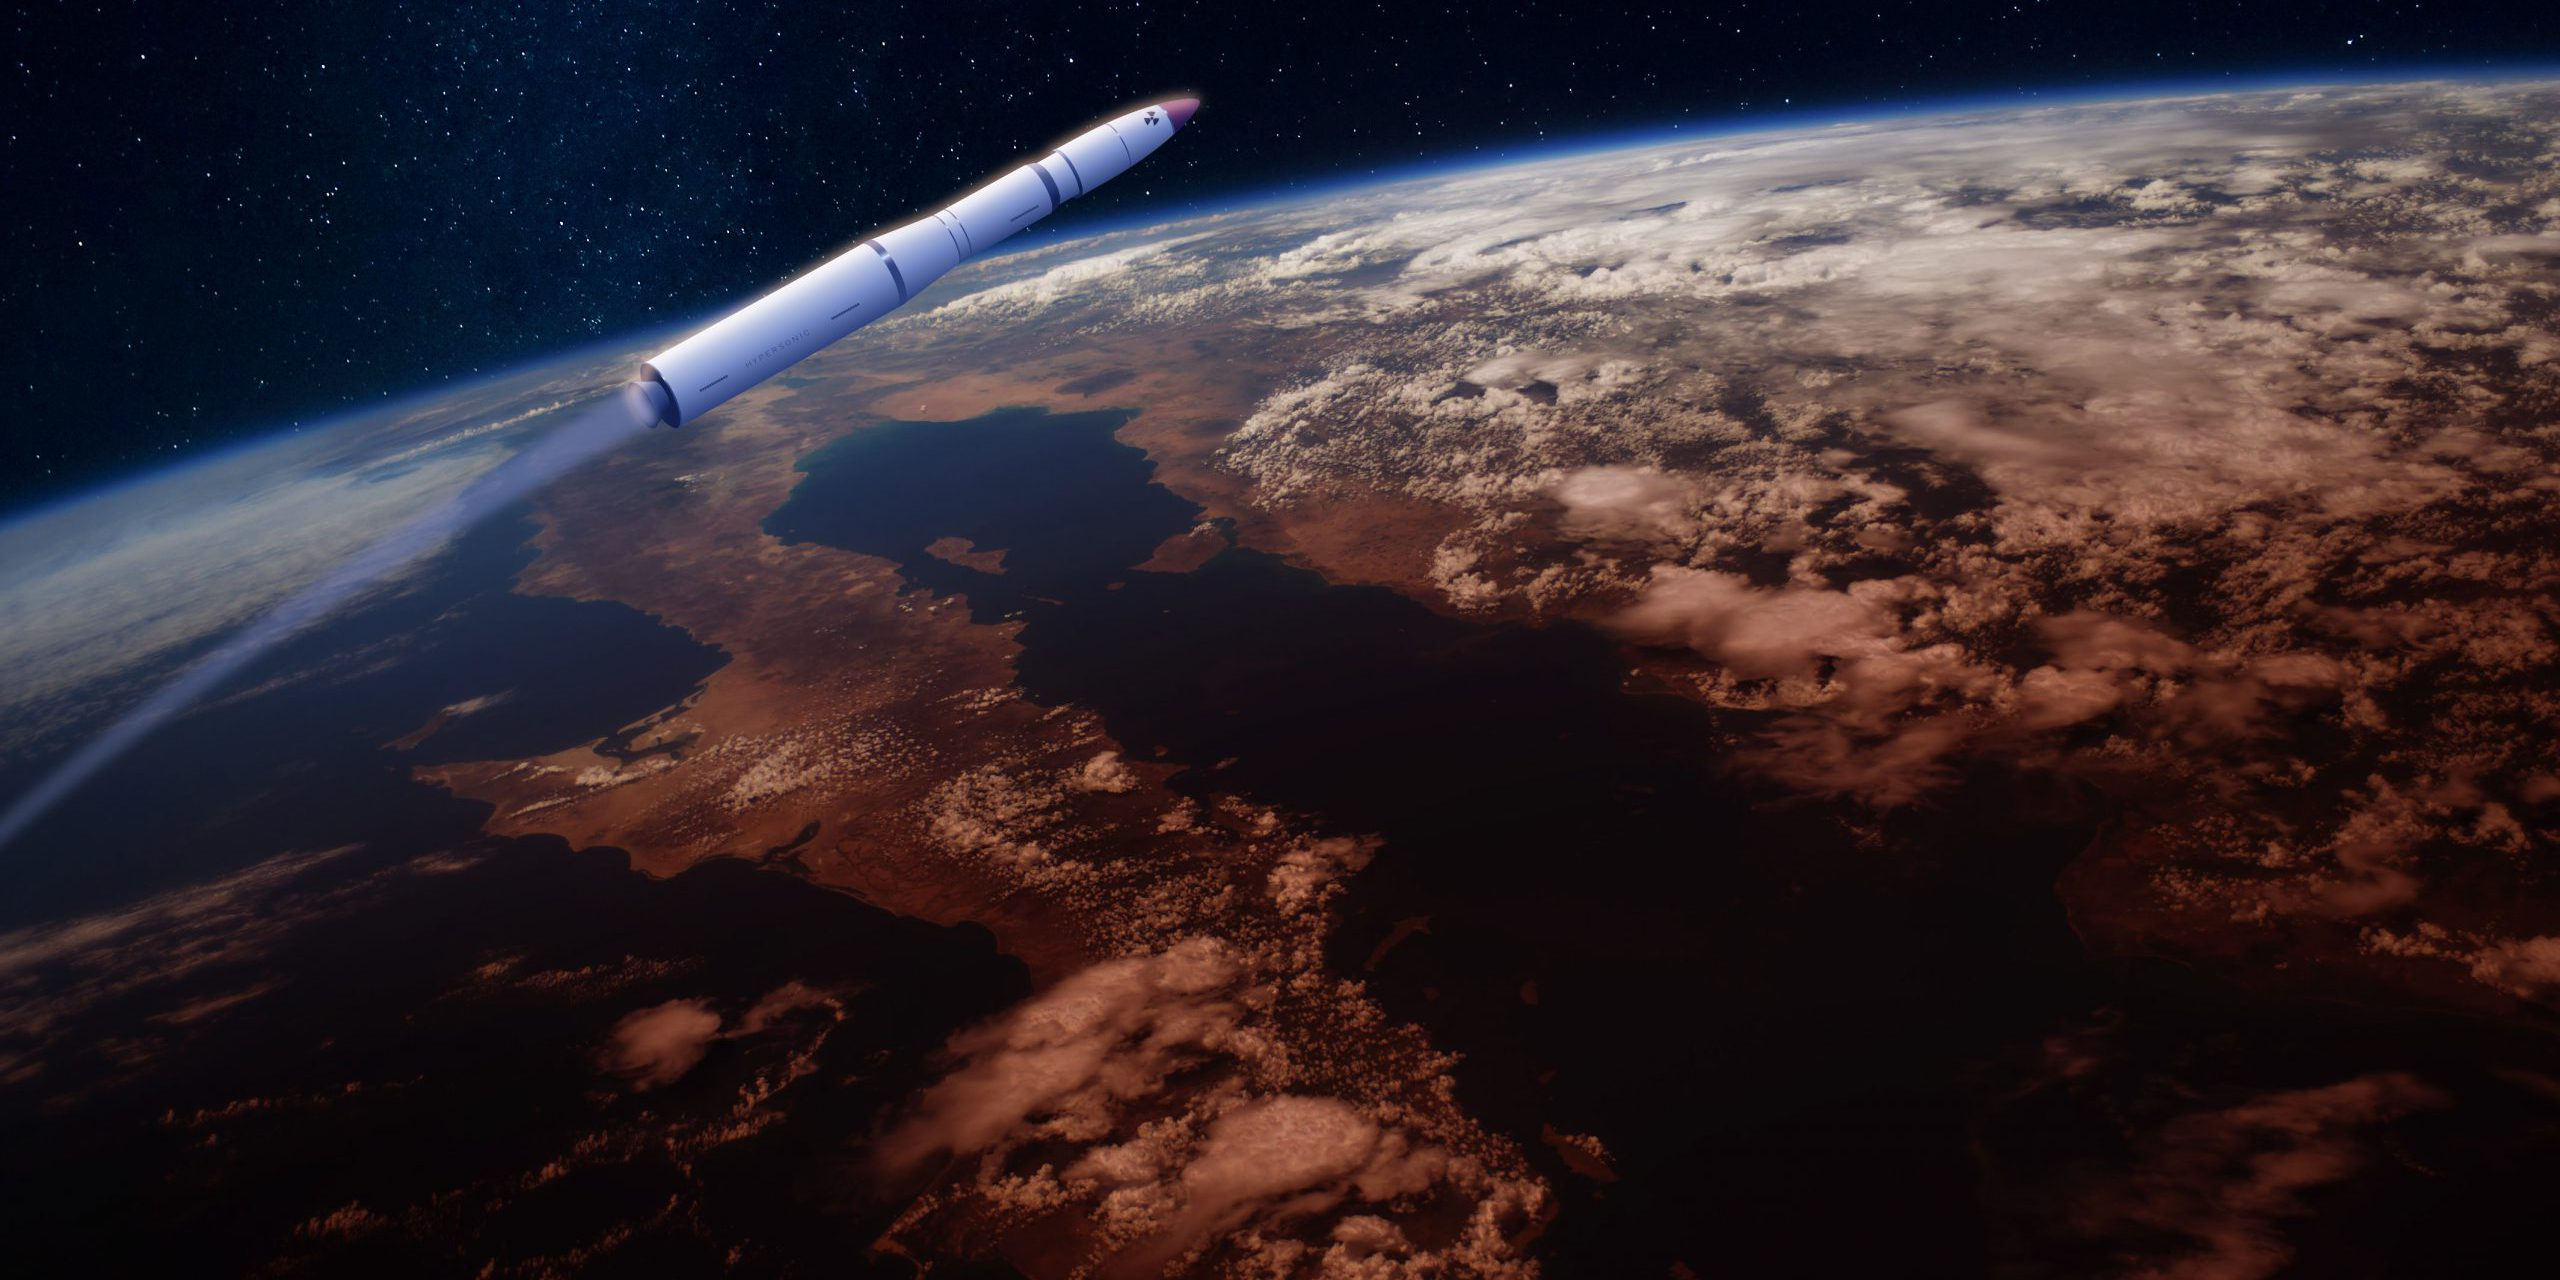 Source: Shutterstock, https://www.shutterstock.com/image-illustration/hypersonic-missile-rocket-over-apocalyptic-earth-1050991484